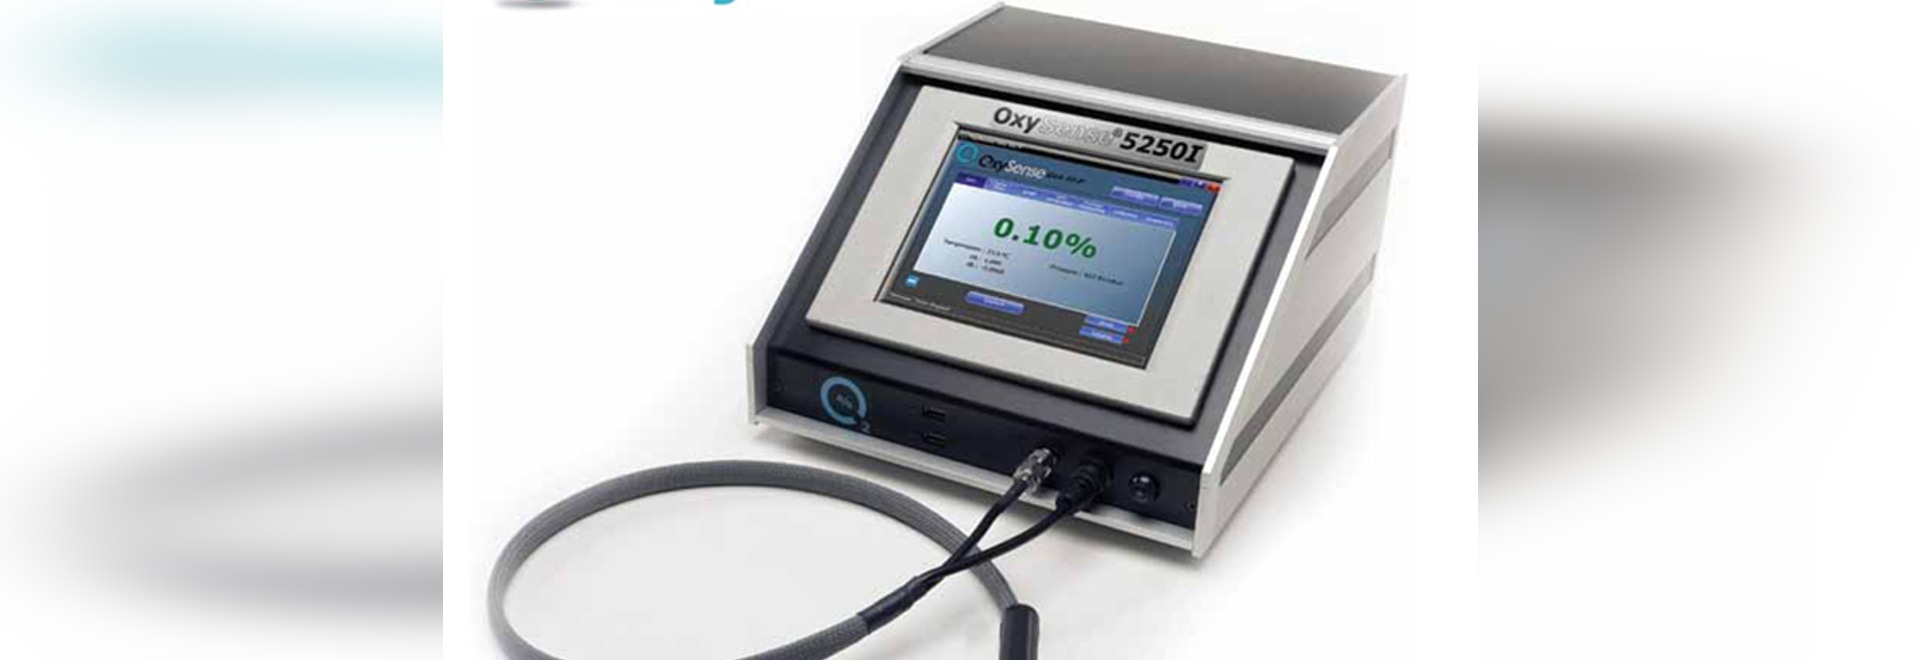 OxySense 5250i analyzer